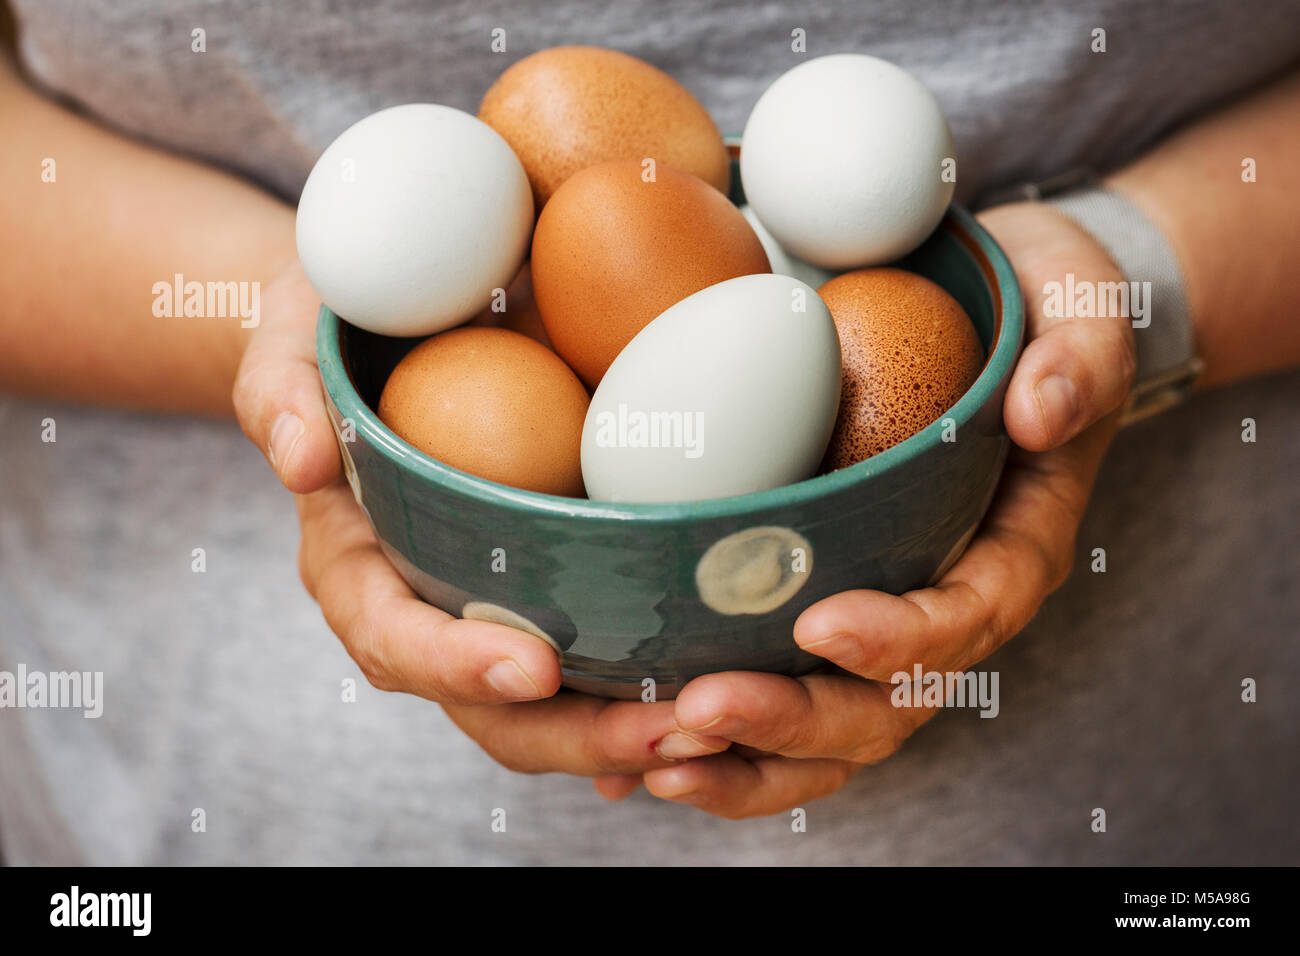 A woman holding bowl with fresh brown and white eggs. - Stock Image